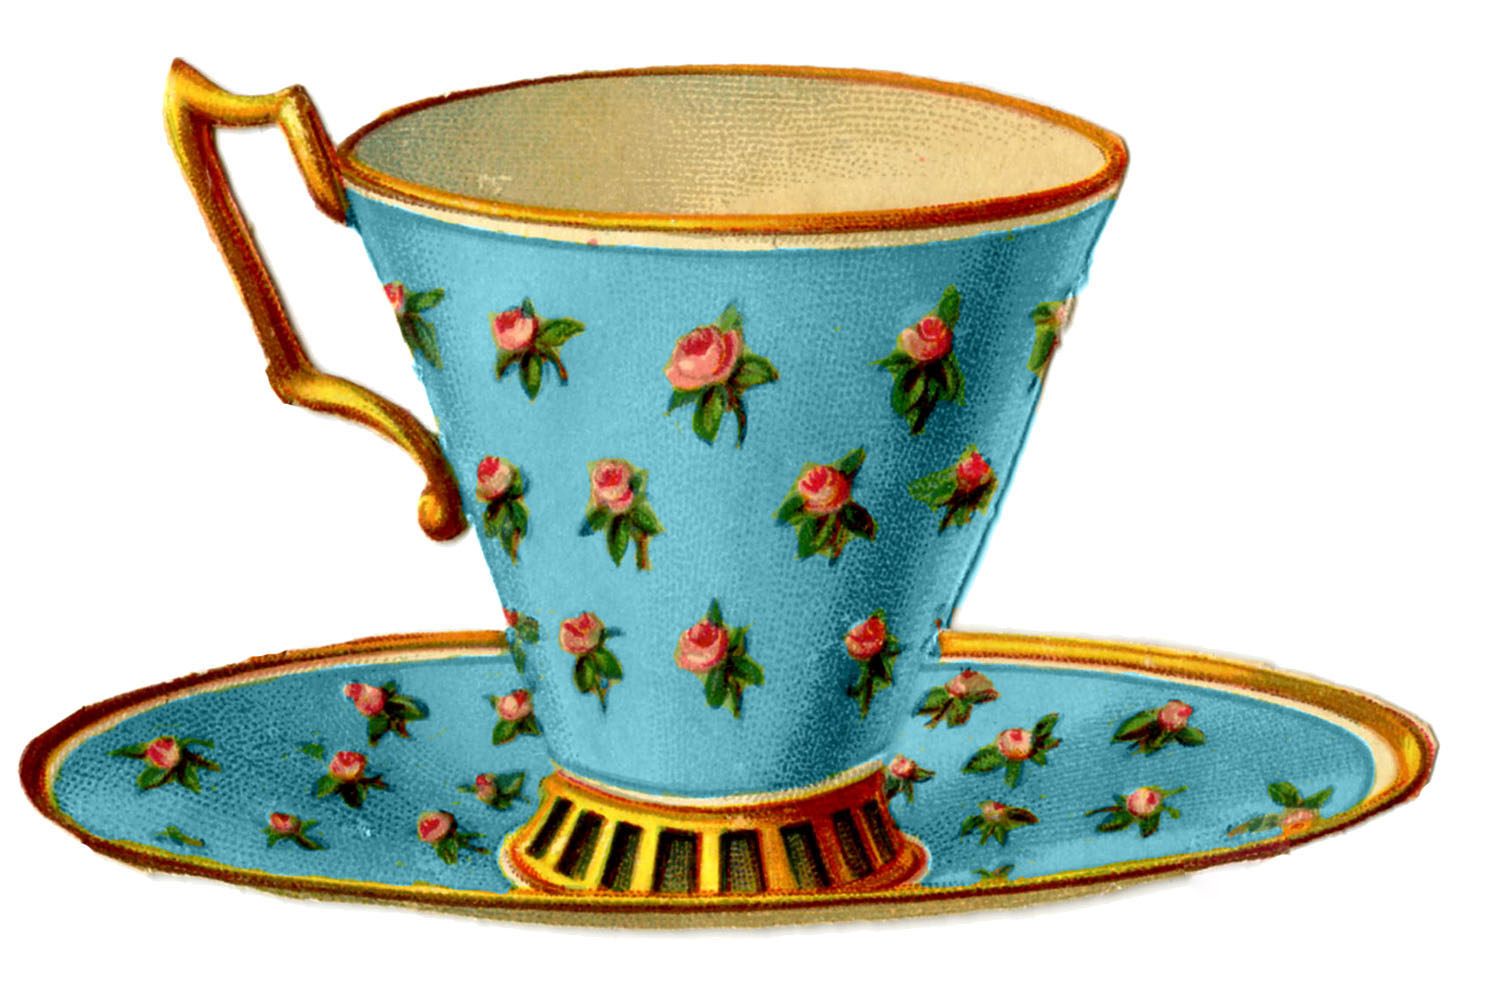 teacup+vintage+image+GraphicsFairy8bl